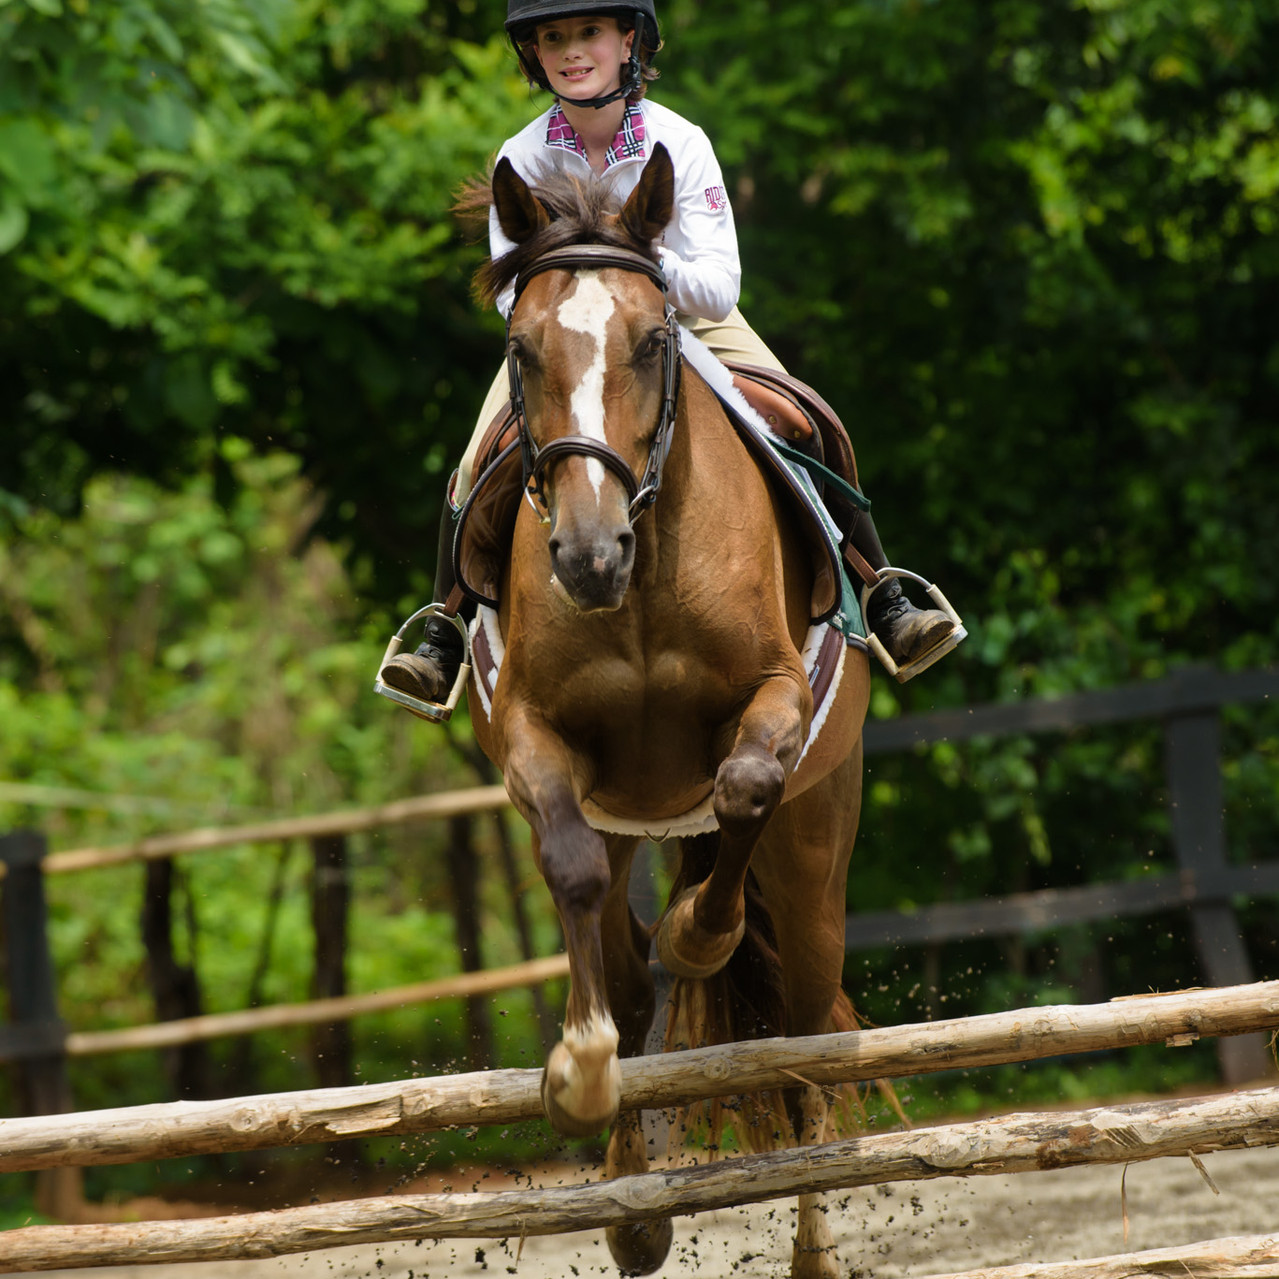 Jumping strong at Costa Rica Equestrian Vacations